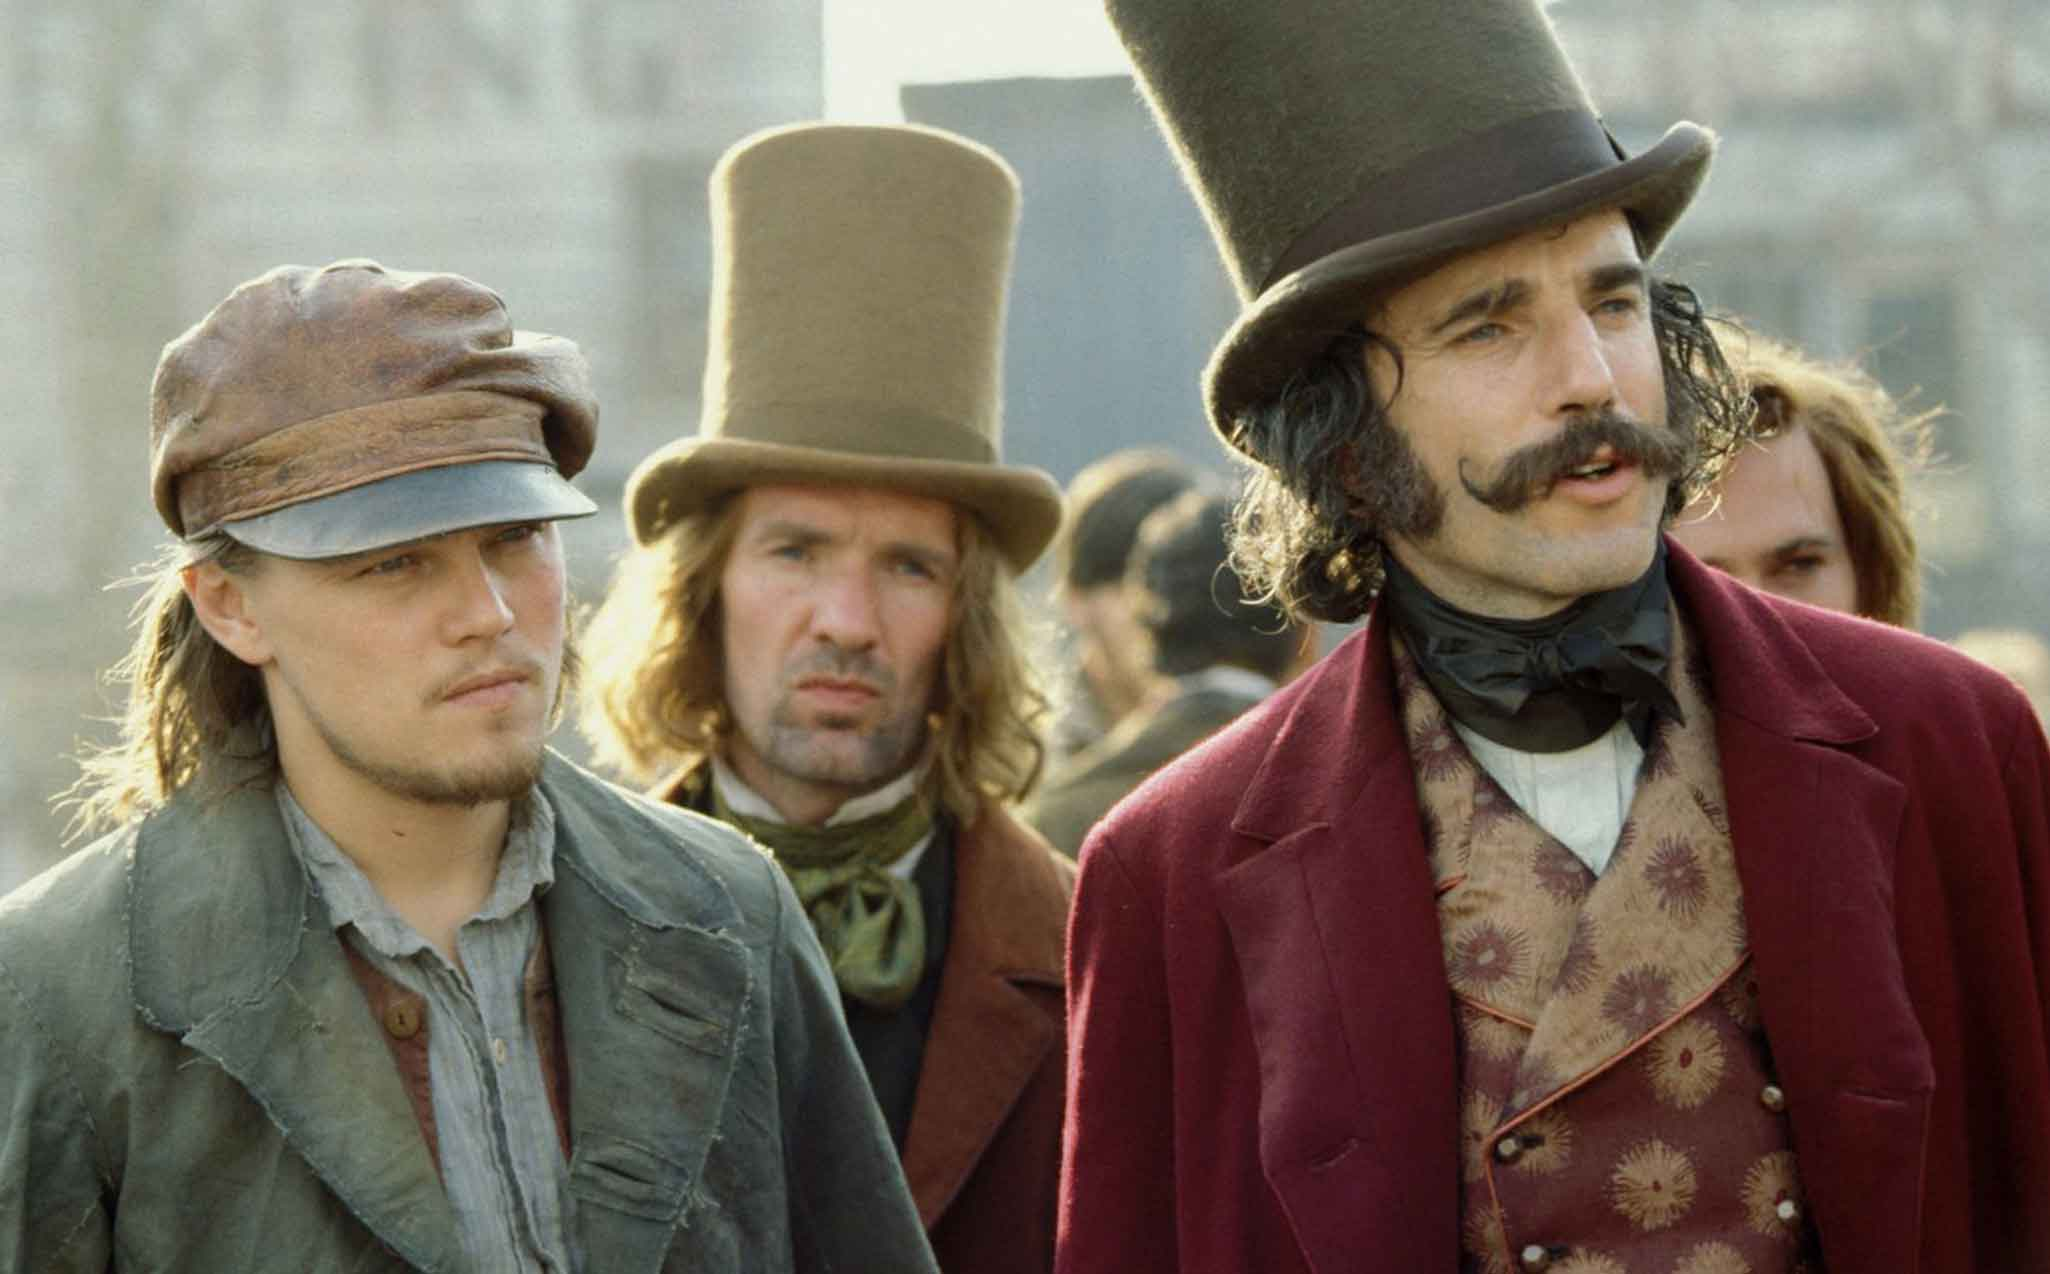 Daniel Day-Lewis and Dicaprio in Gangs of New York - Arriving on Netflix in August